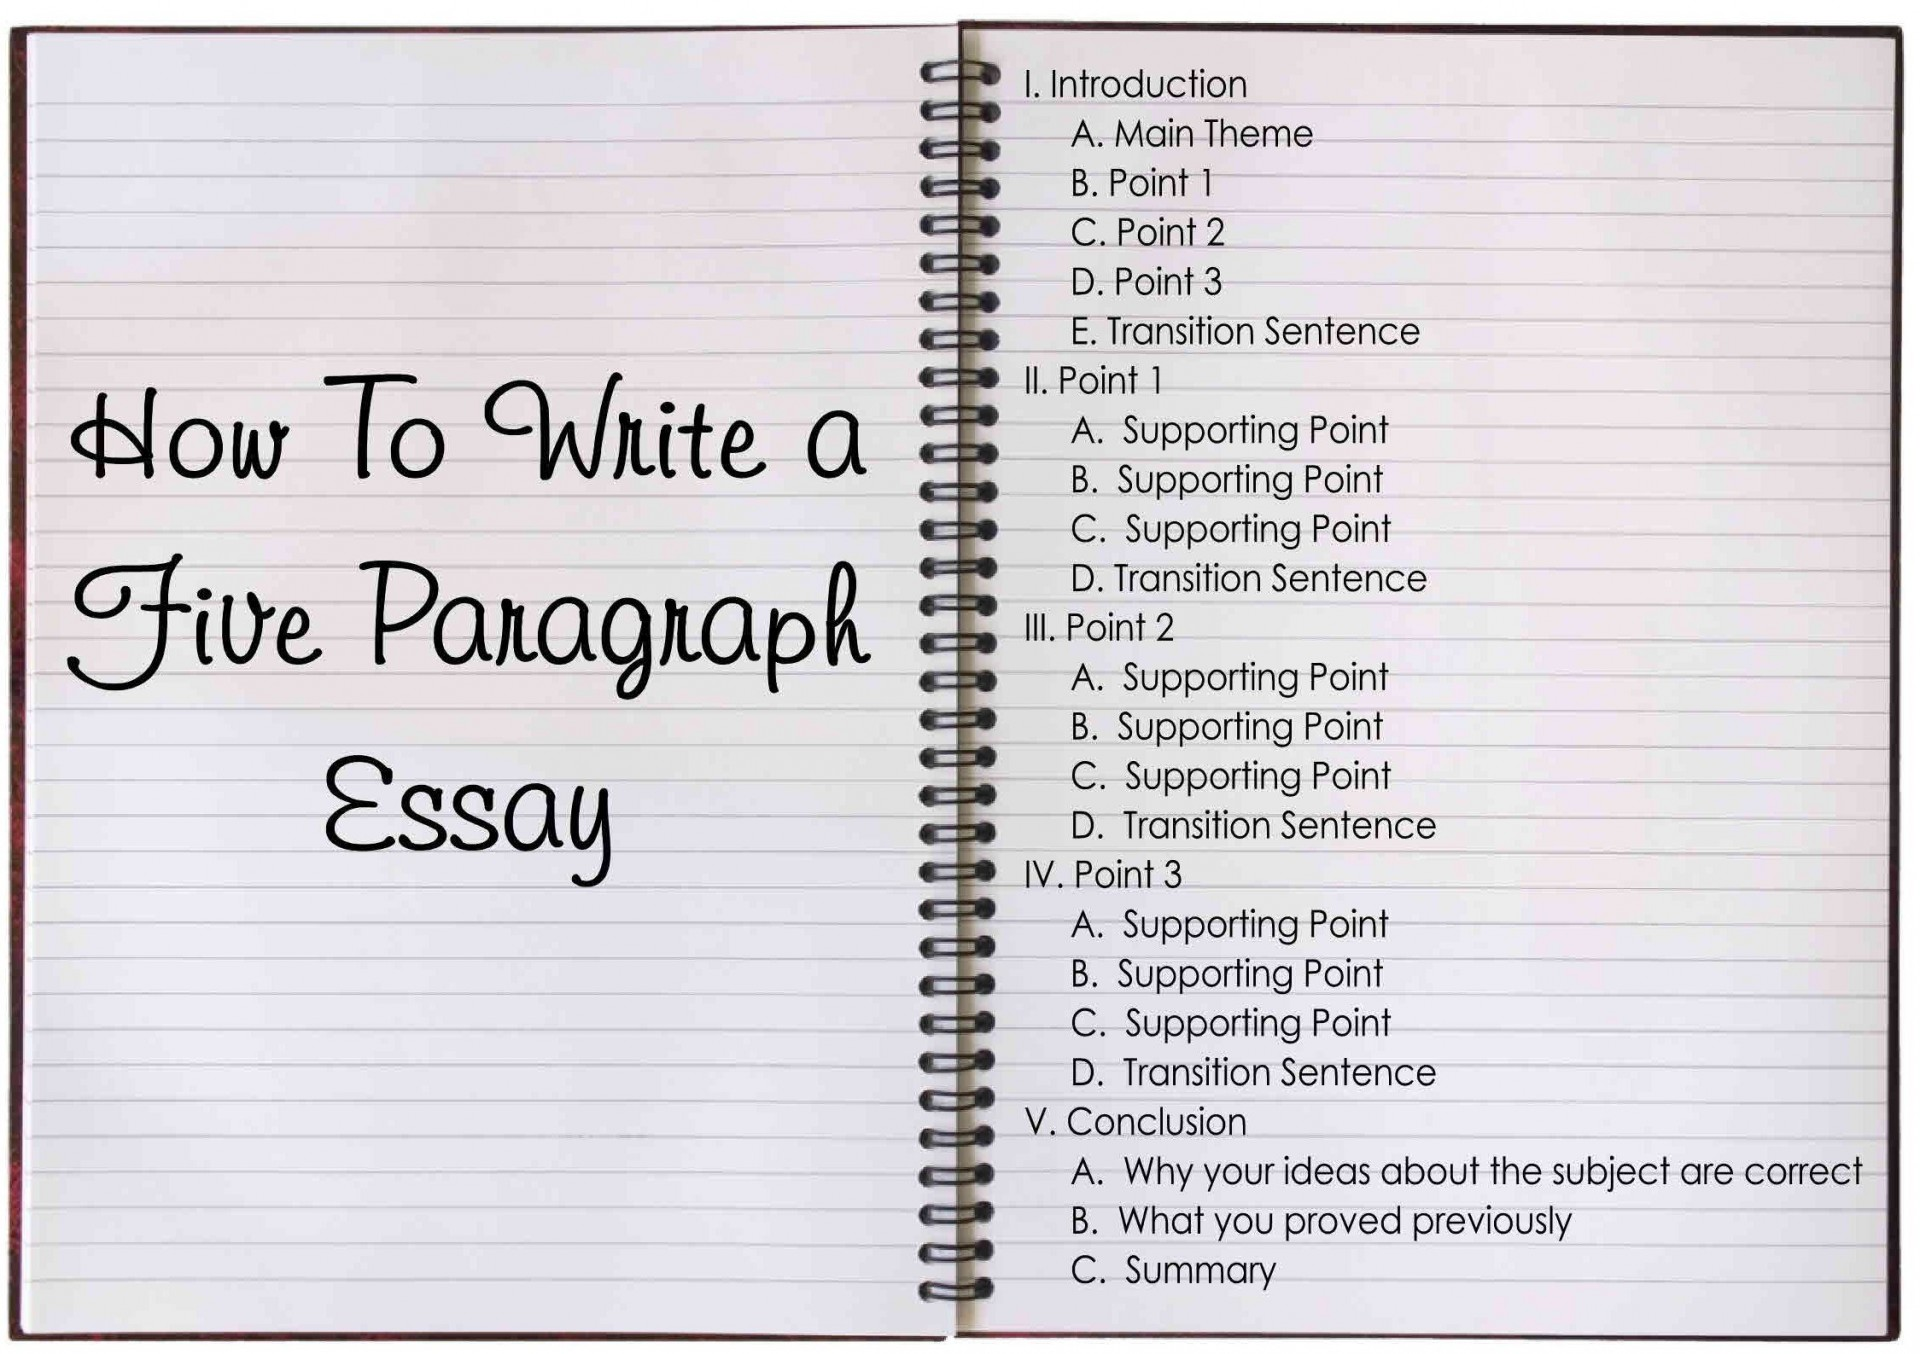 006 How To Write Five Paragraph Essay Unbelievable A Video Pdf Example 1920